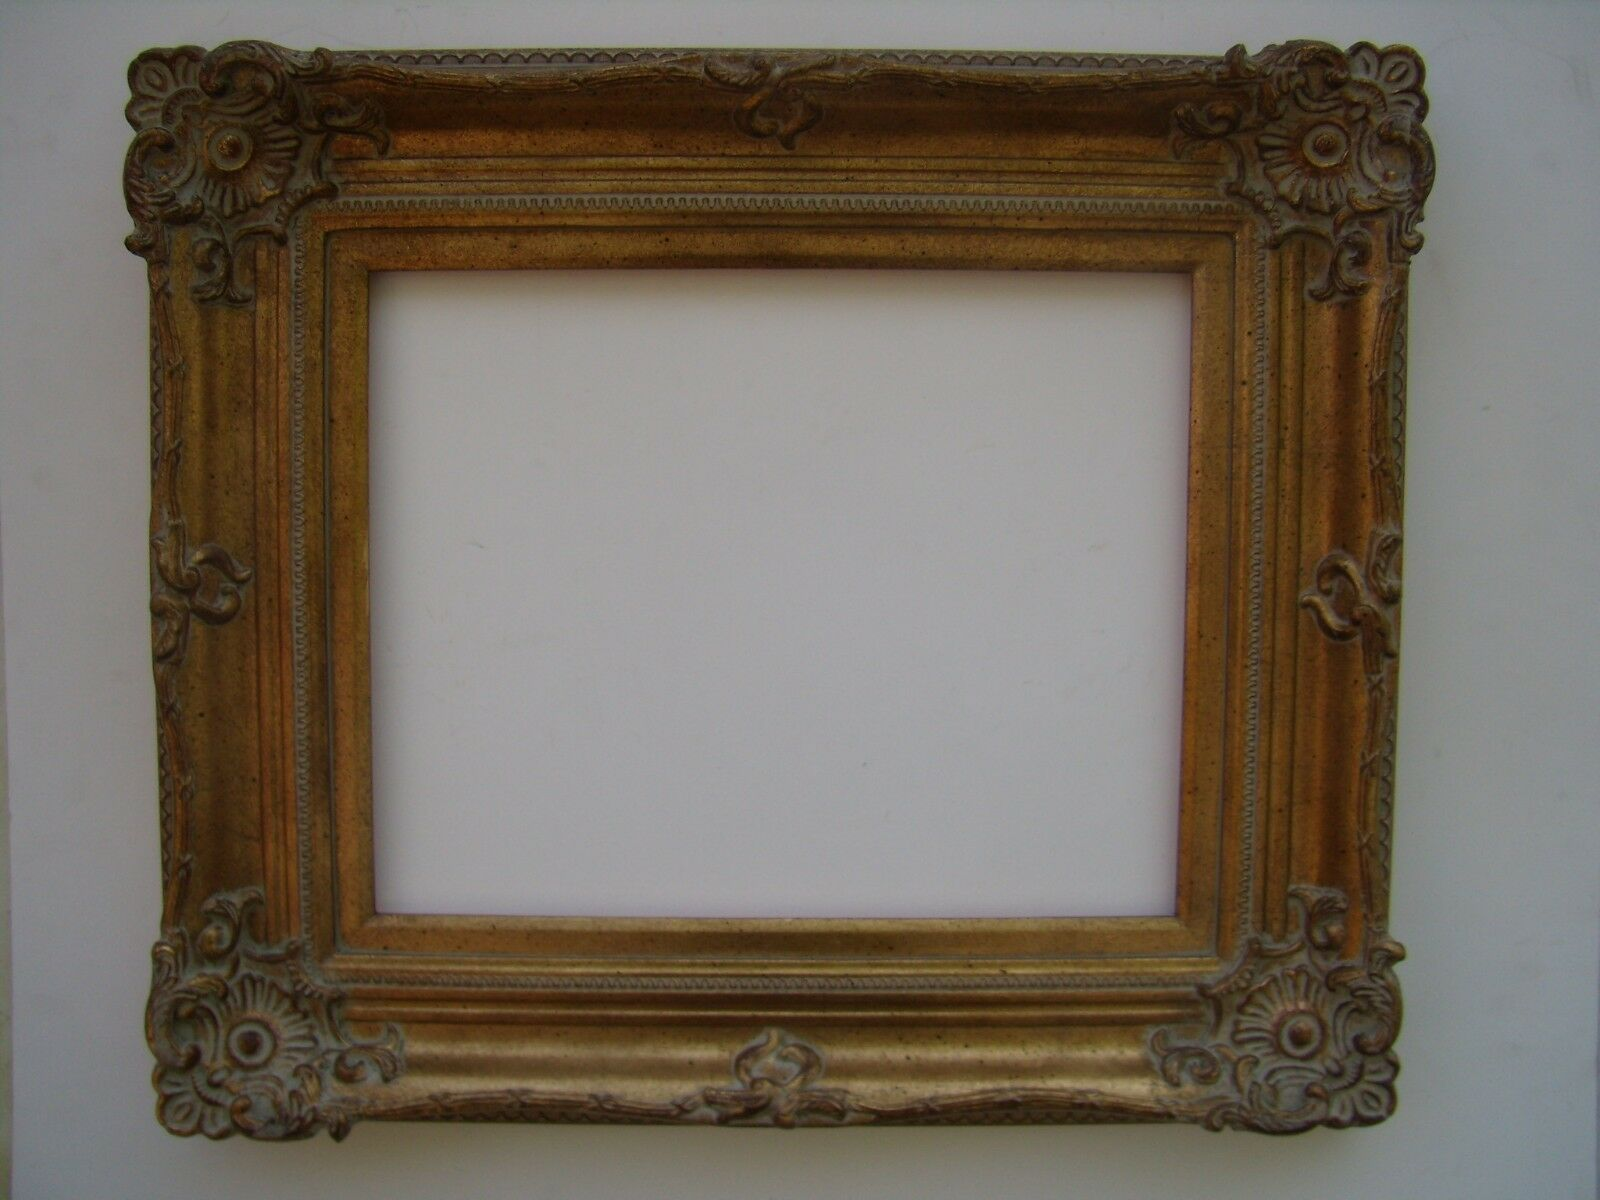 wide ornate gold traditional decorative victorian picture portrait frame 24x36 3 3 of 3 see more